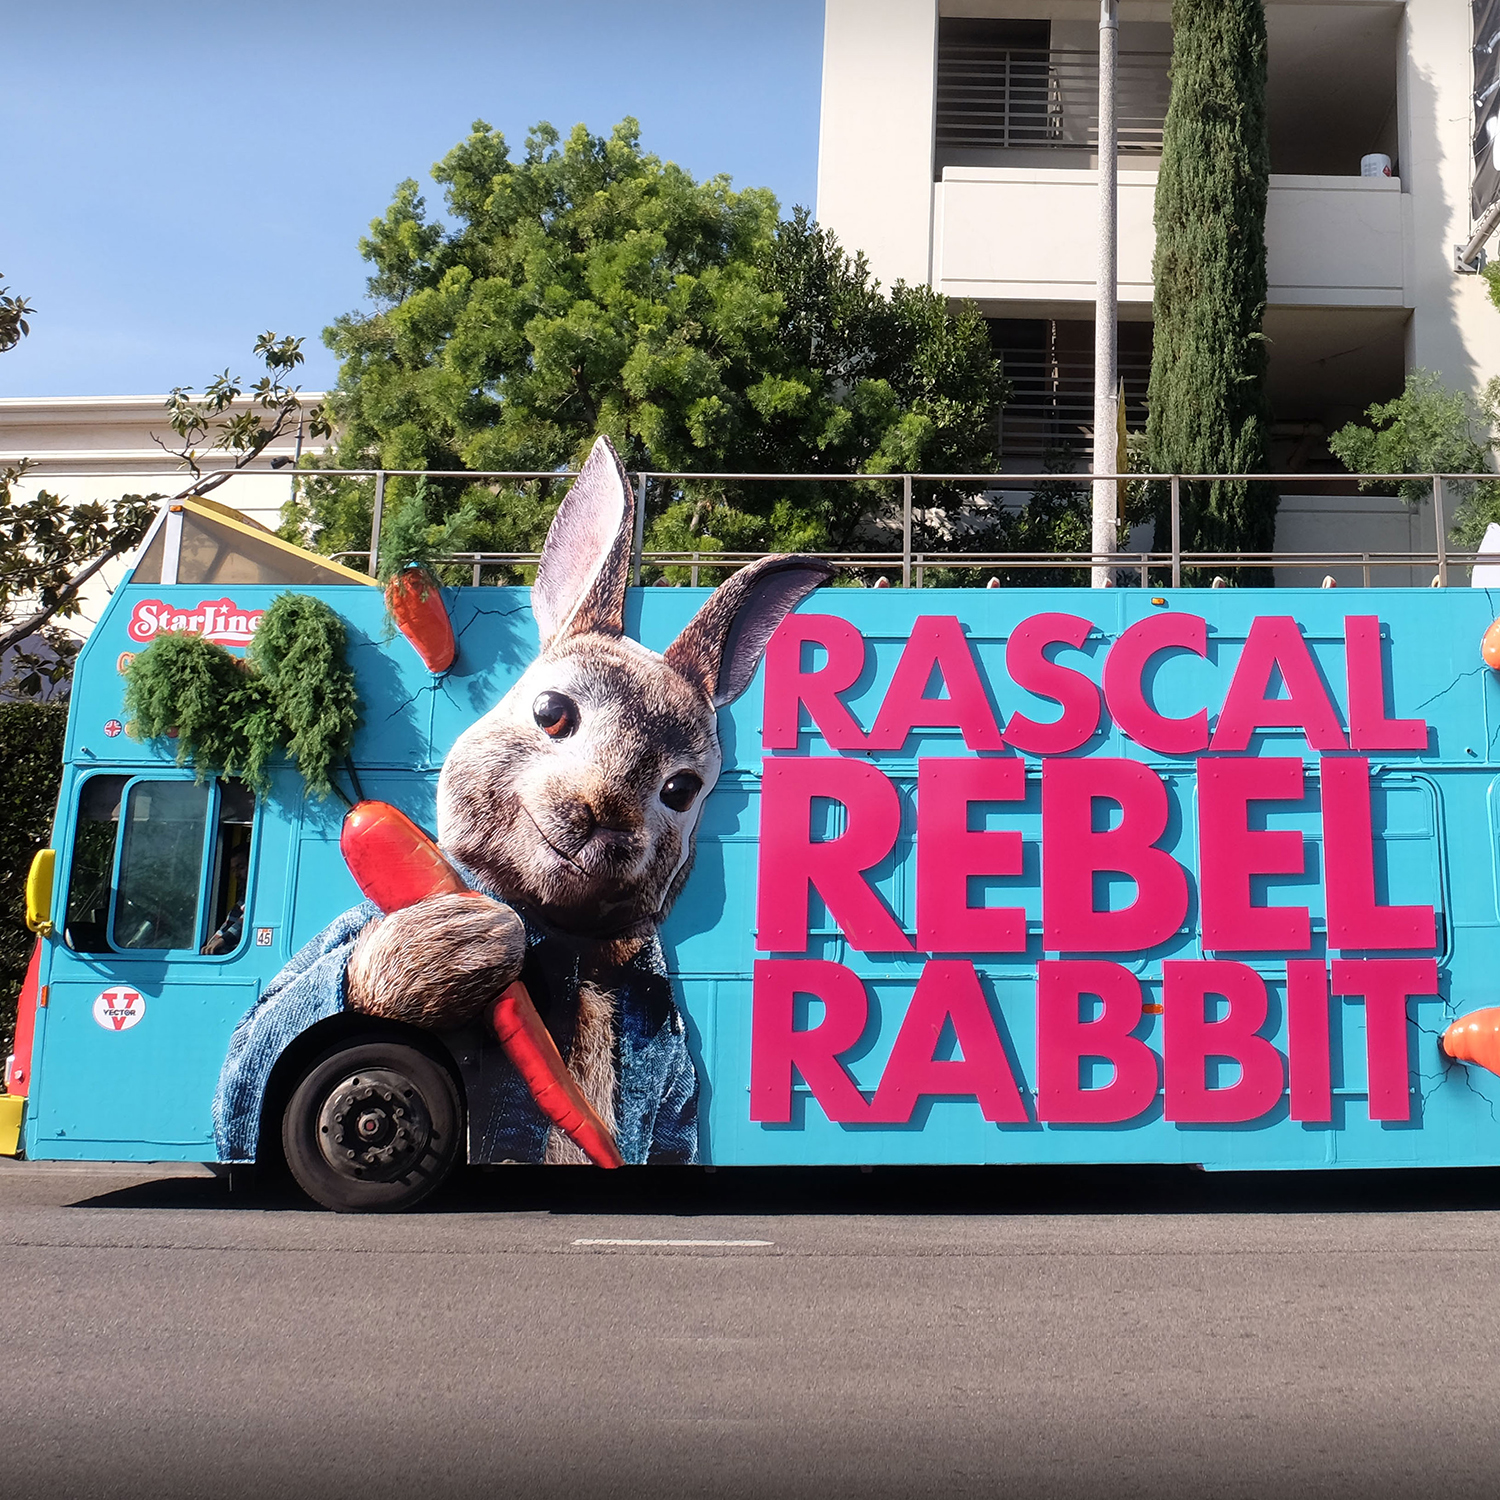 Peter Rabbit bus on the road